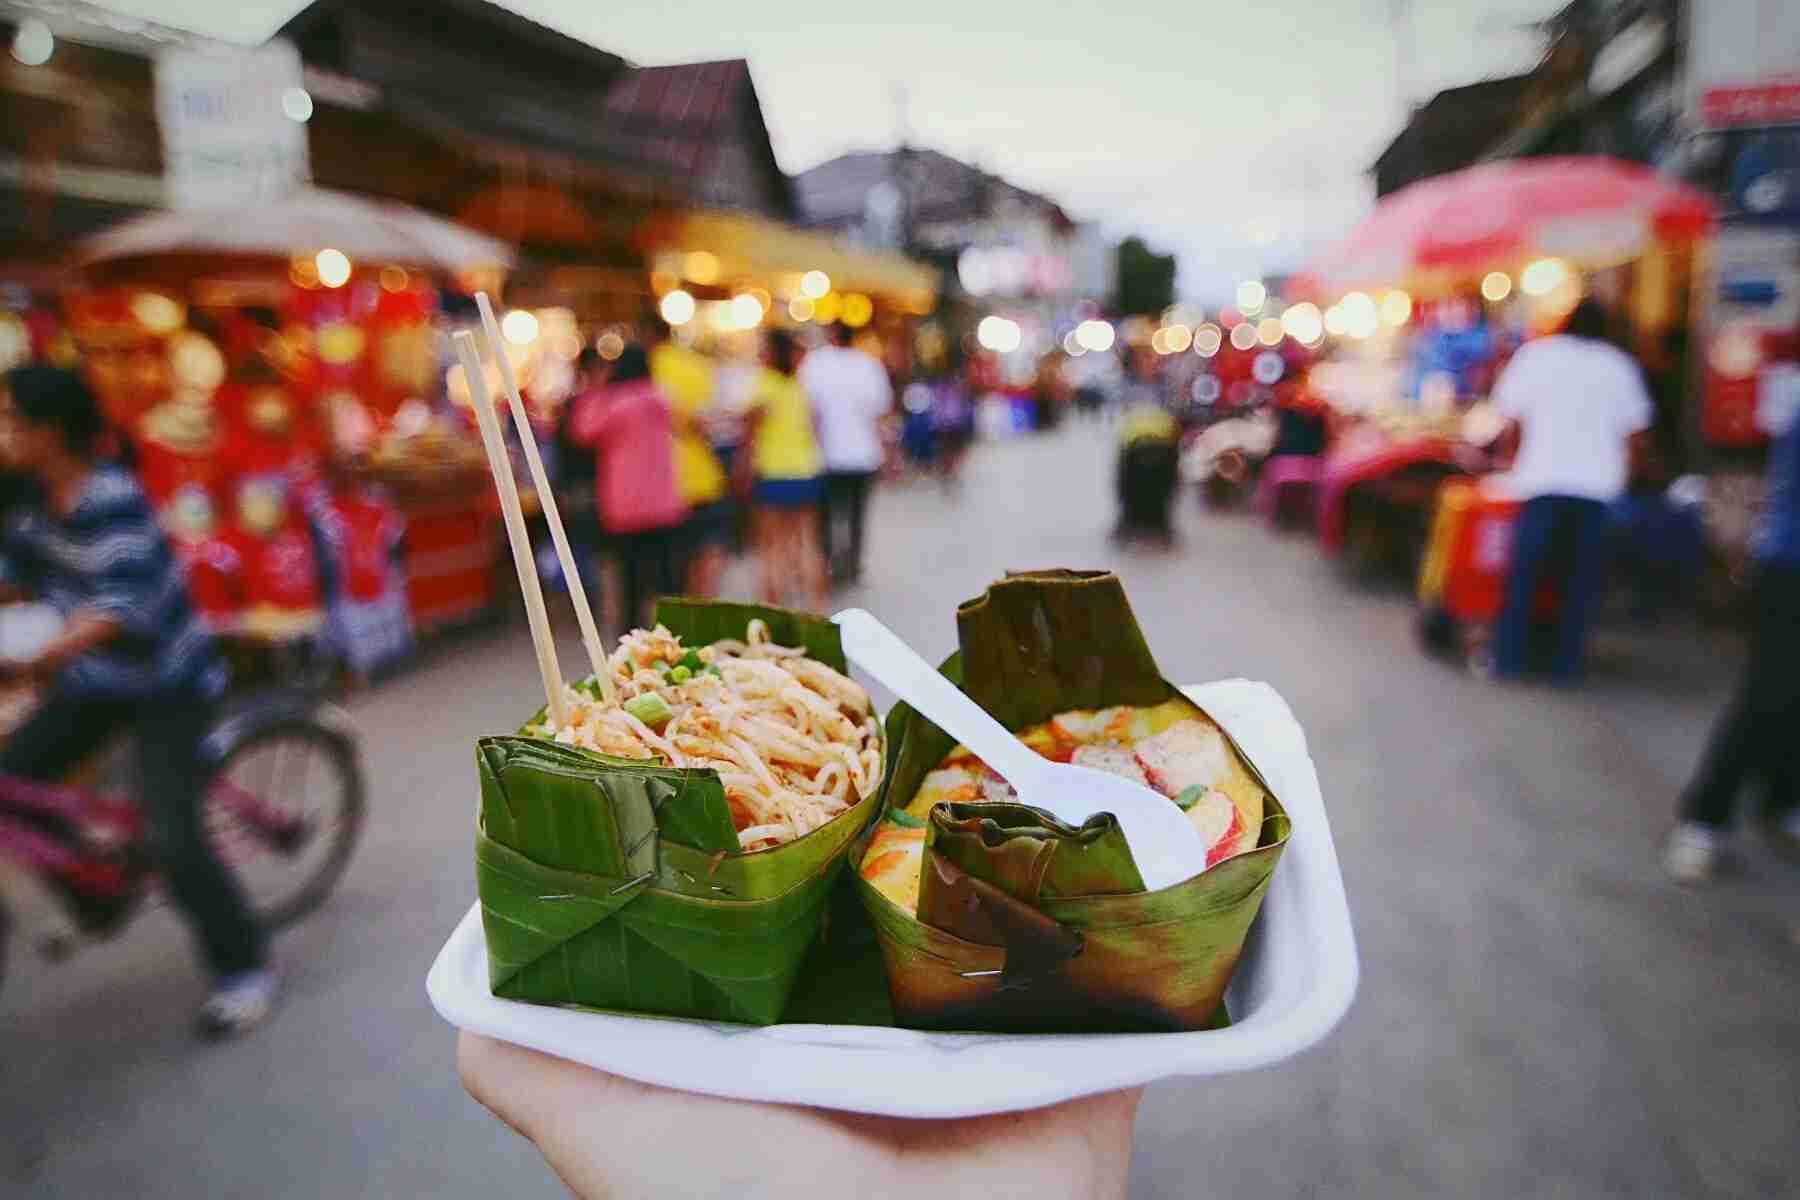 Street food in Thai market. (Photo by Cristian Mihai Vela / EyeEm)